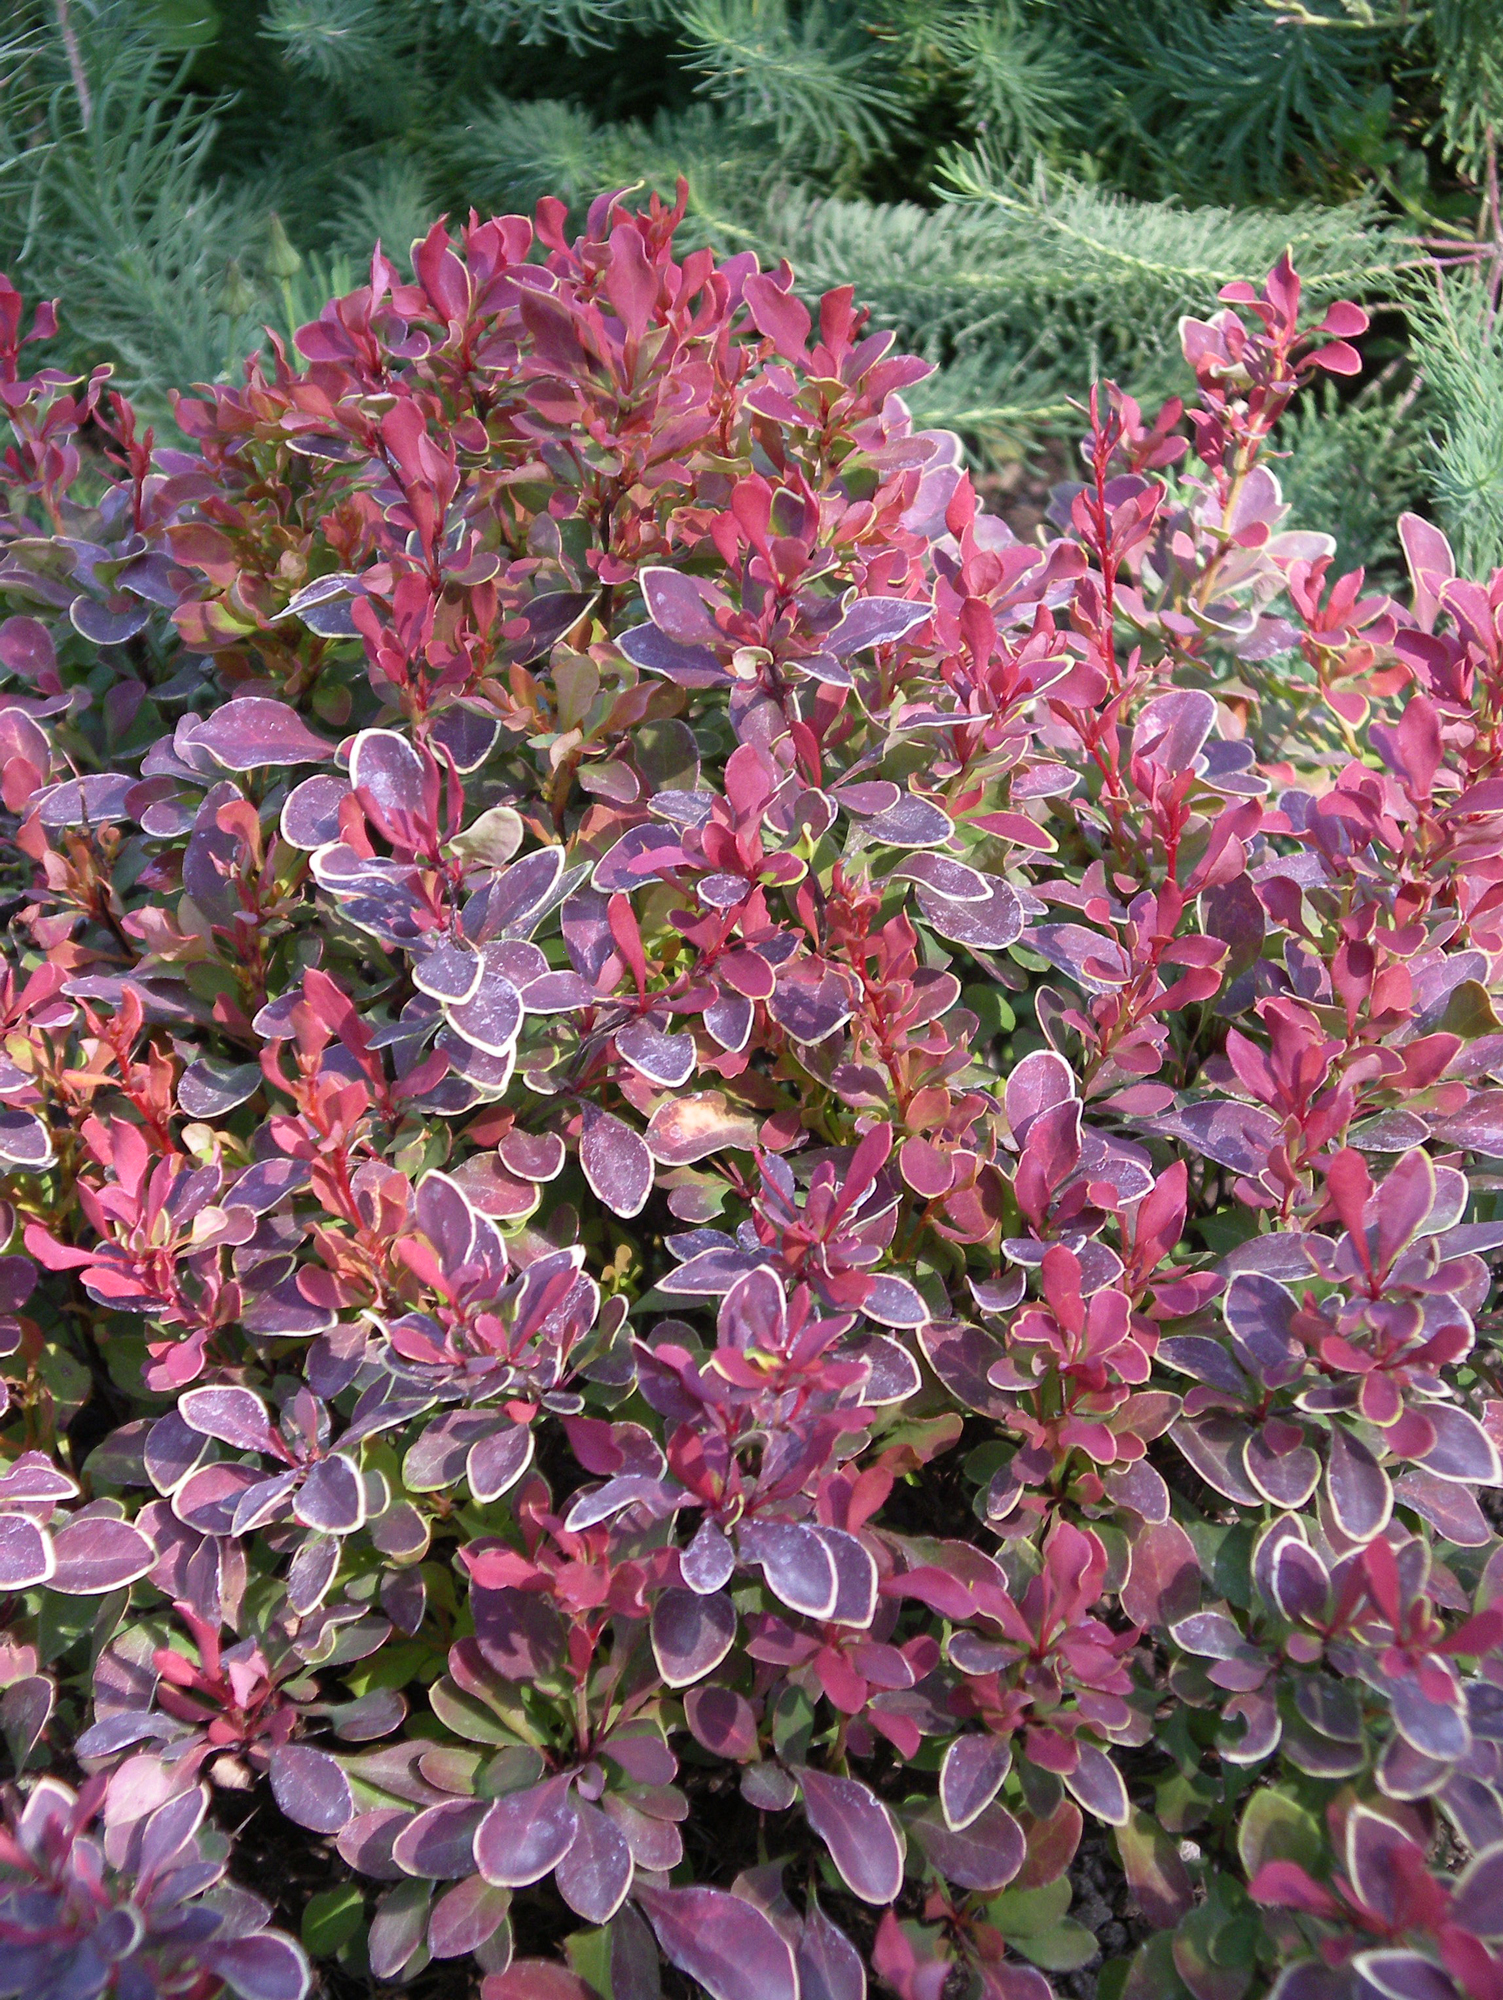 New Barberry Varieties Add Colorful Easy Accent Options